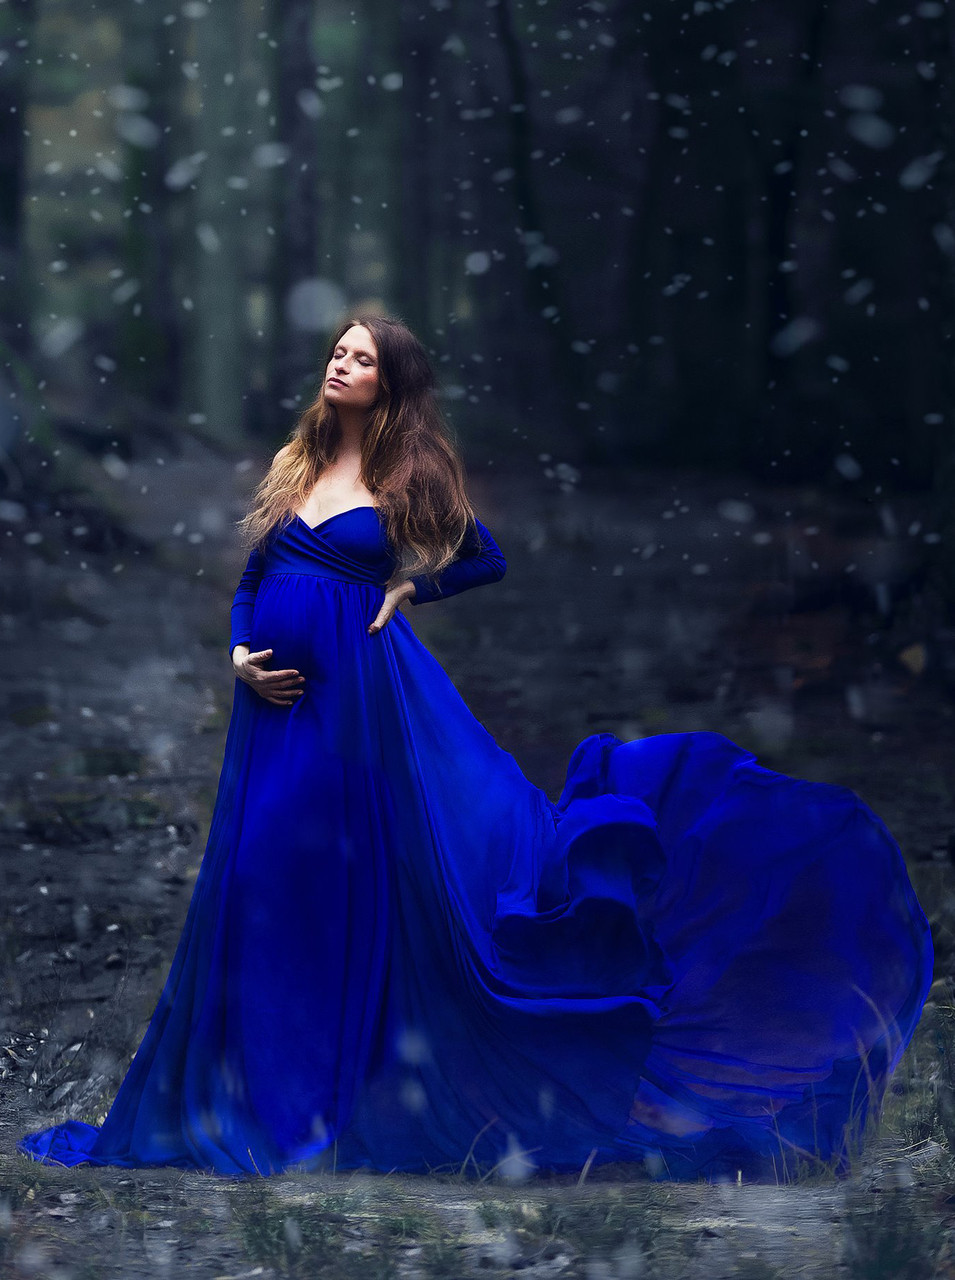 ec0e8b9c491 Camille Royal Blue Maternity Dress